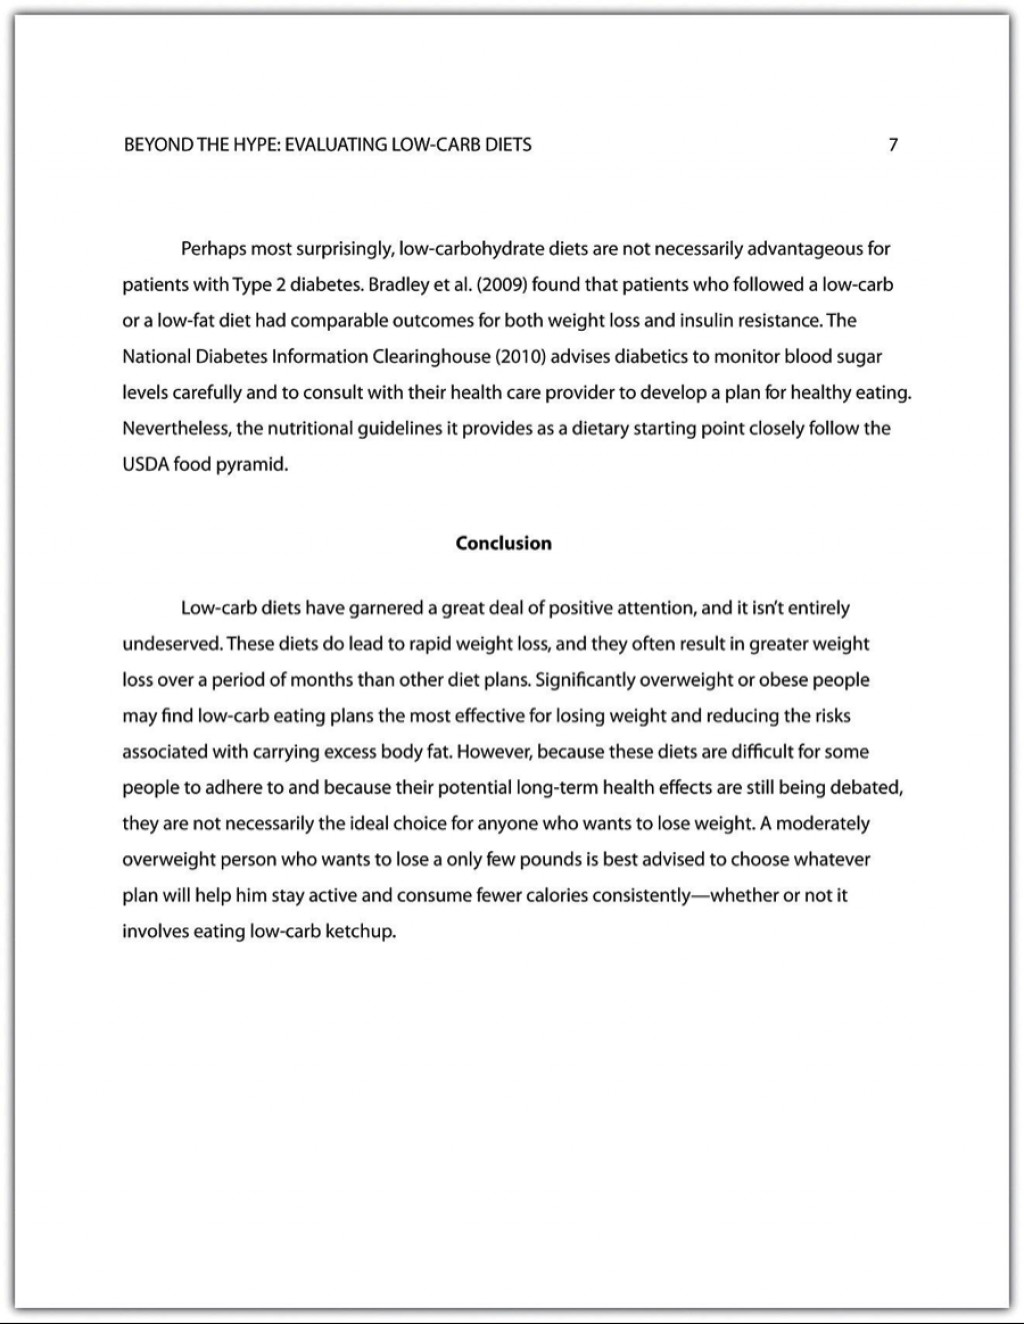 007 Research Paper Pay For Equal Essay Excellent Work In India Performance Writing Large